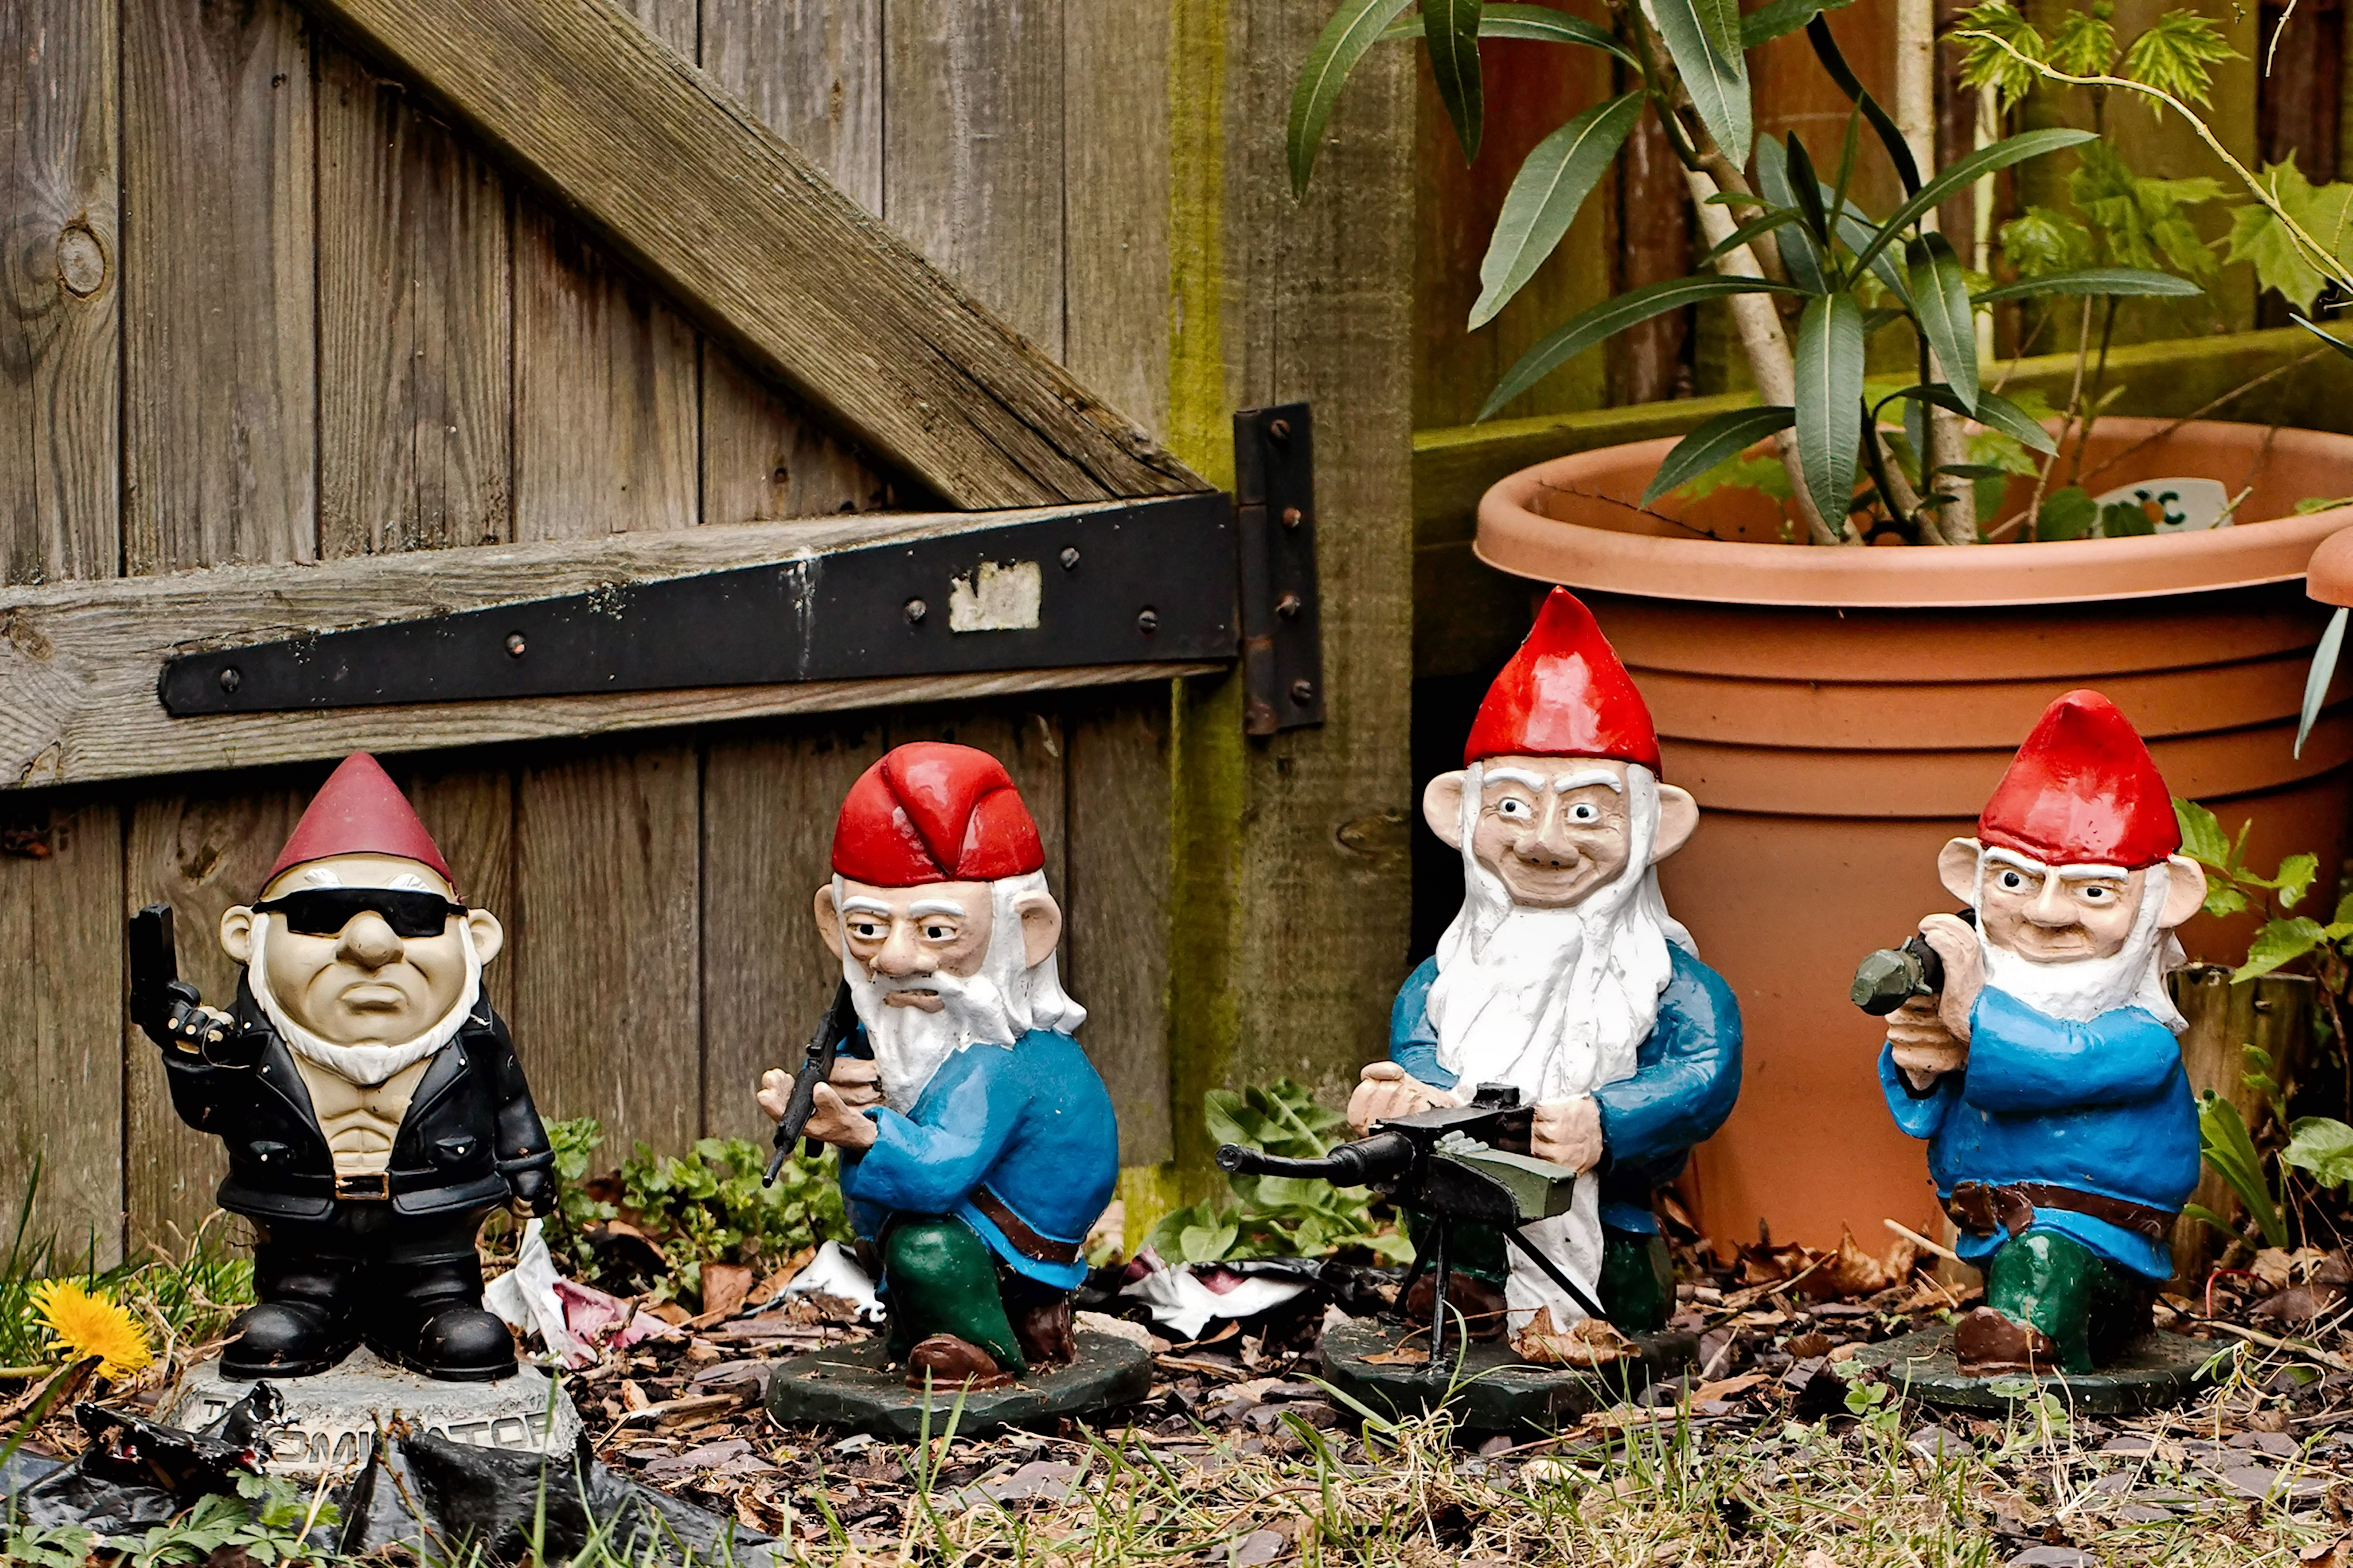 File:Spring is here, and so our garden gnomes have come out of ...